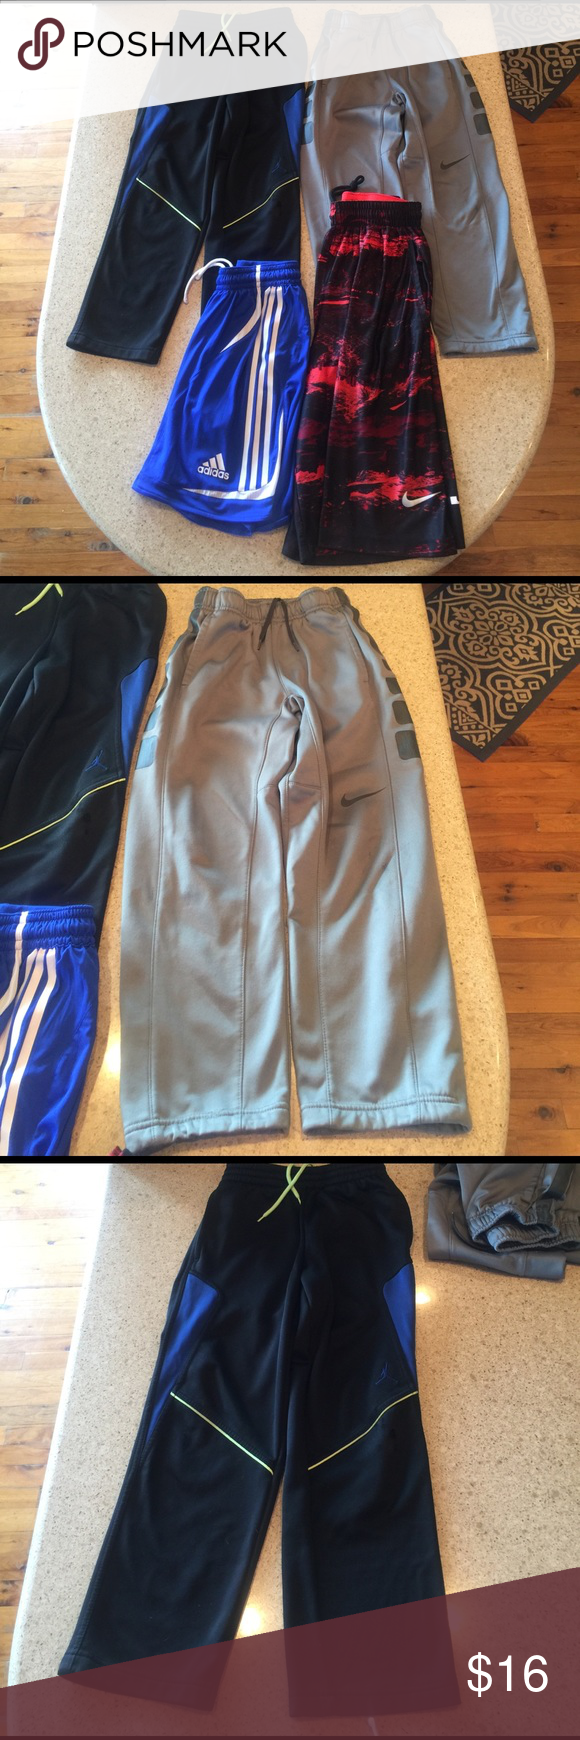 Boys Small Shorts Pants Bundle Boys Small Shorts Pants Nike Bundle. The 2 Nike pants have a bit o wear in on the knee but otherwise perfect. The 2 Shorts are Nike & Adidas in perfect condition. Great buy! Nike Bottoms